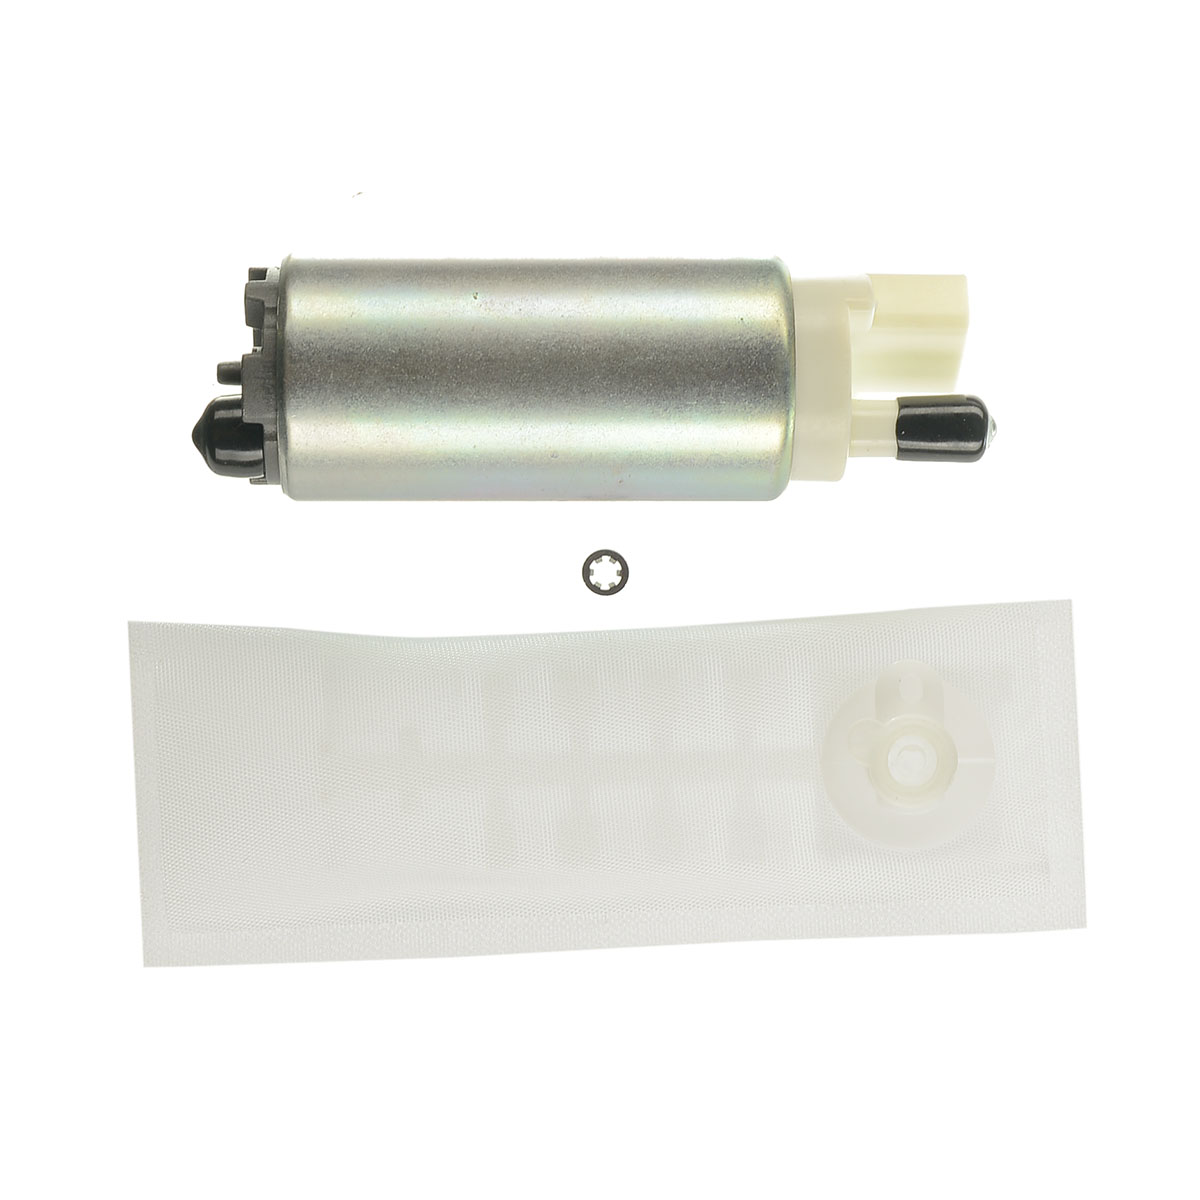 Electric Fuel Pump For Nissan Maxima A33 Series V6 3 0l 1999 2000 2001 2002 2003 Vq30de Sedan In Pumps From Automobiles Motorcycles On Aliexpress